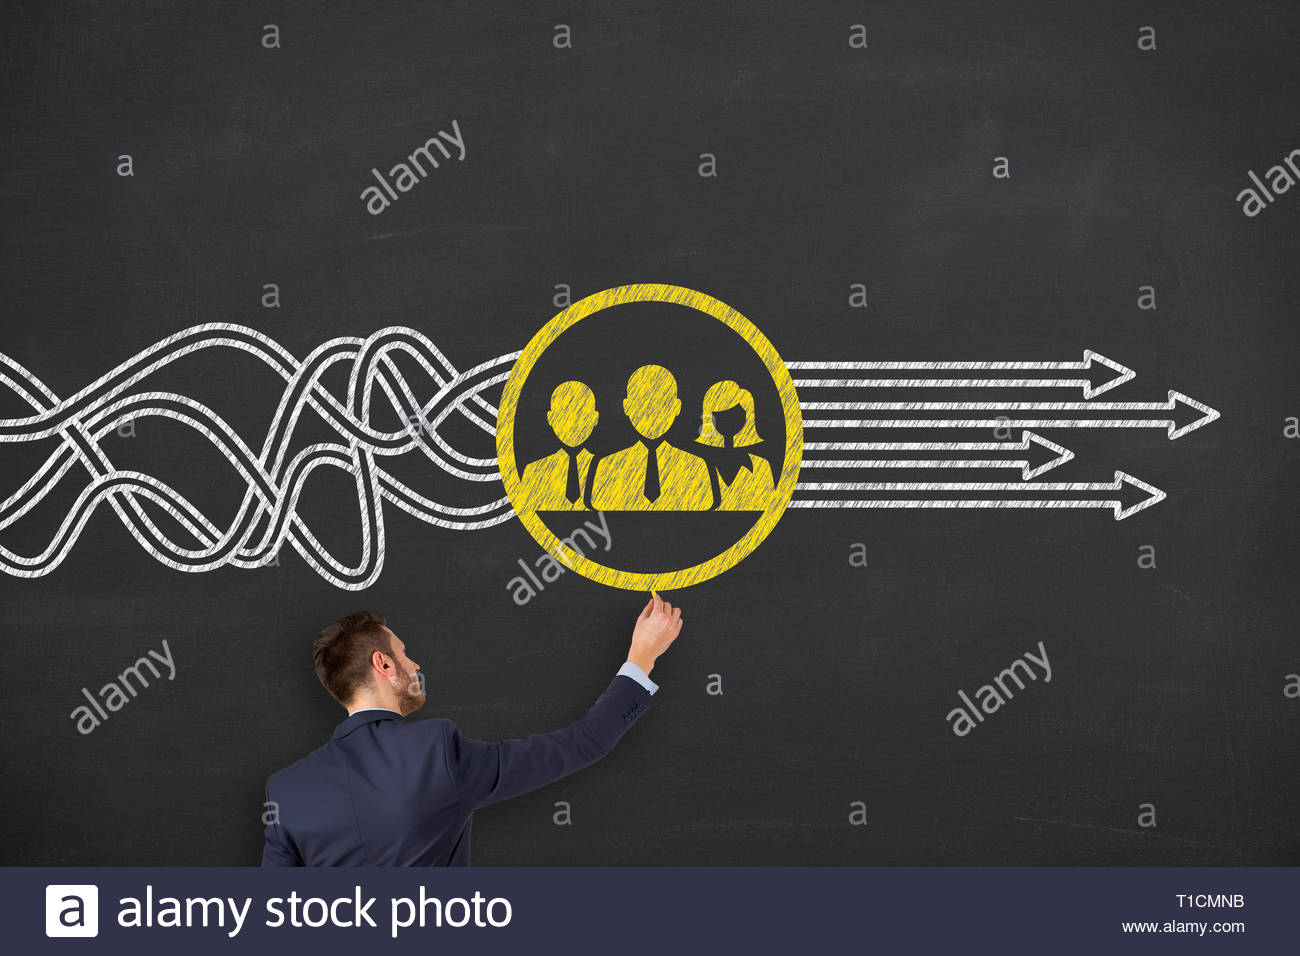 Teamwork Solutions Concepts on Chalkboard Background - Stock Image